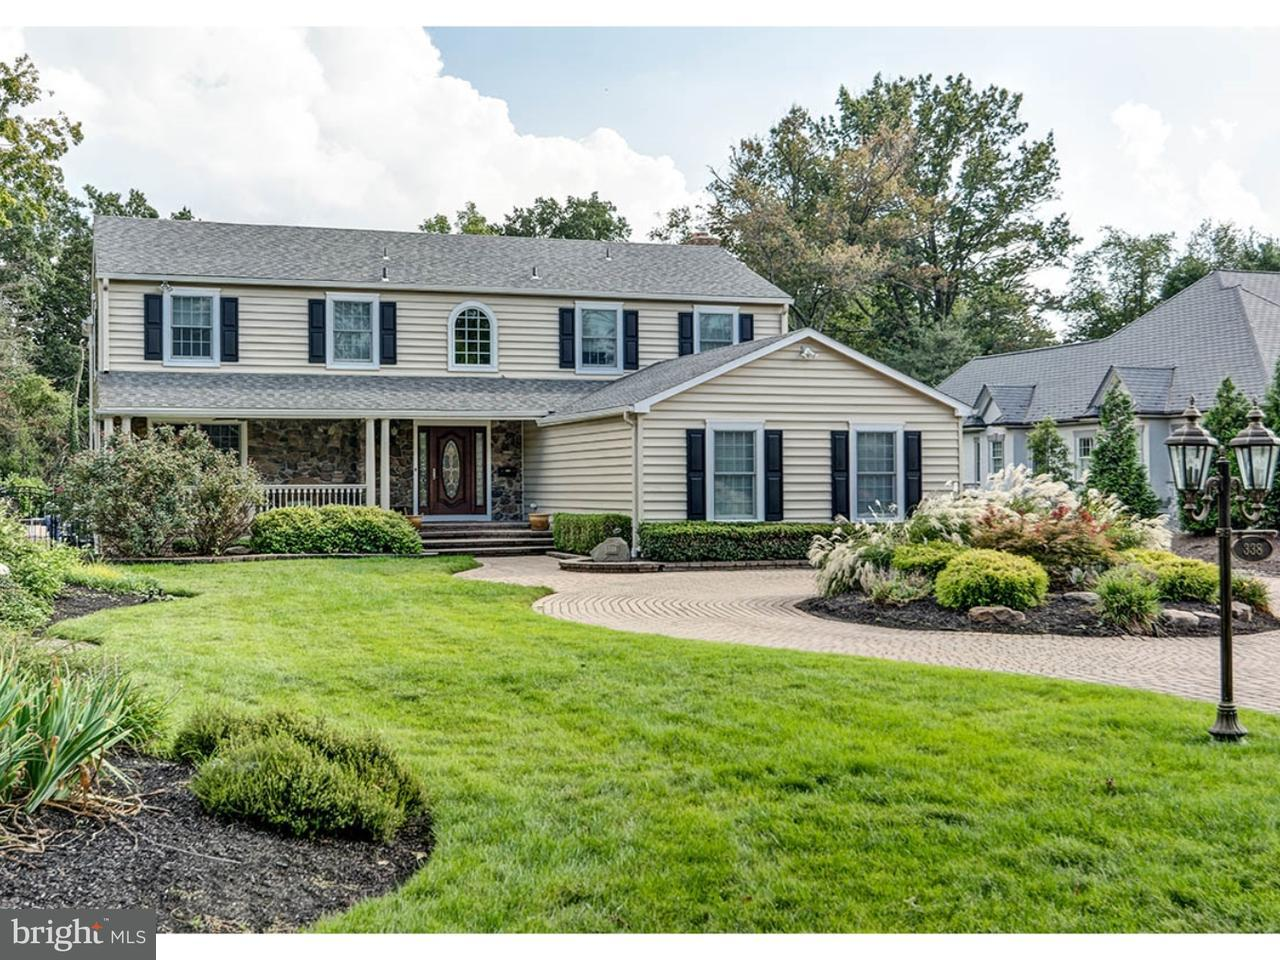 Single Family Home for Sale at 338 KINGS HWY W Haddonfield, New Jersey 08033 United States